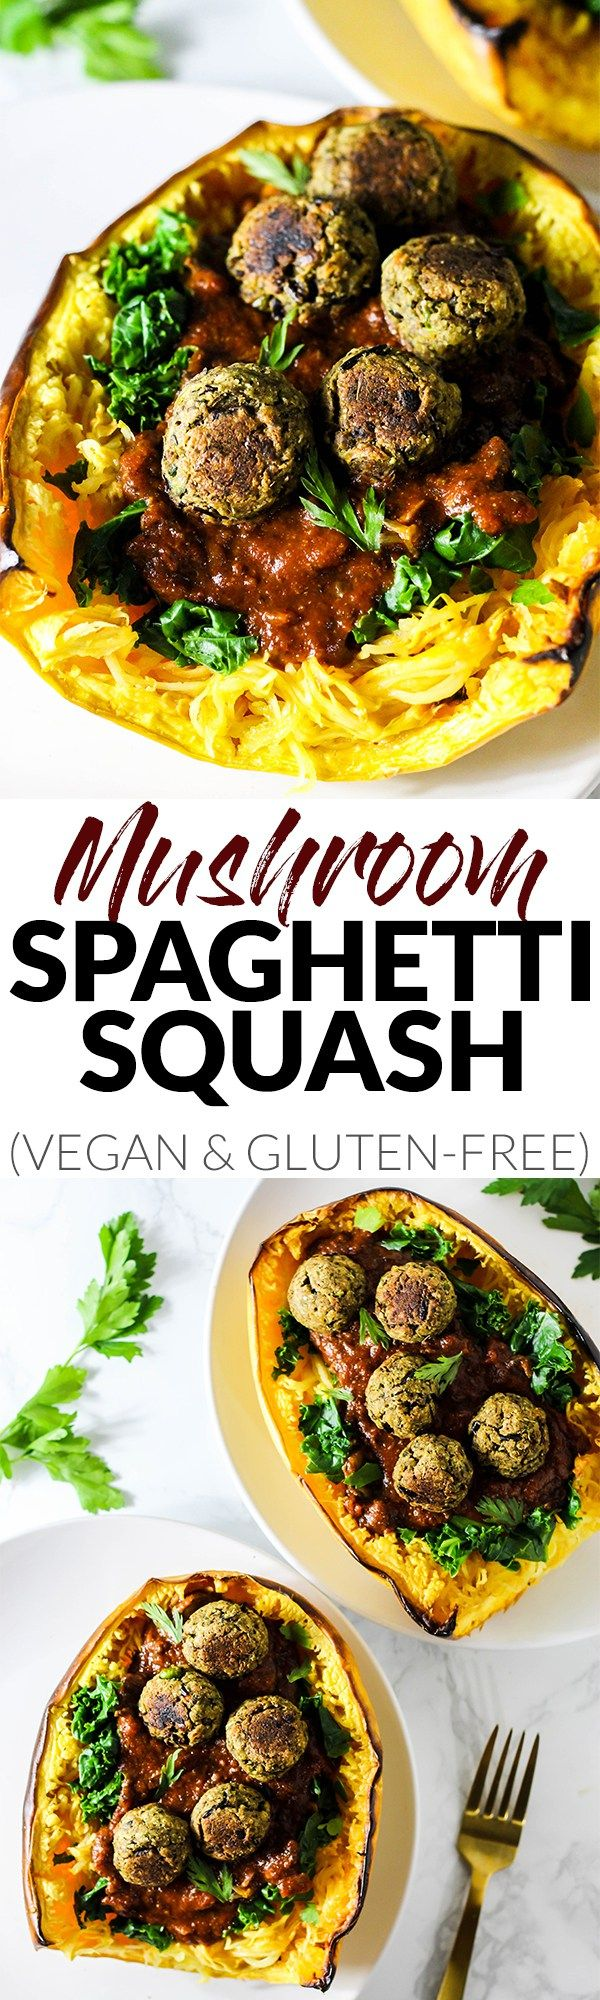 This Mushroom Spaghetti Squash recipe is a delicious, wholesome way to use seasonal squash! It's topped with a hearty mushroom sauce & vegan meatballs. (vegan & gluten-free) @DrPraegers #sponsor